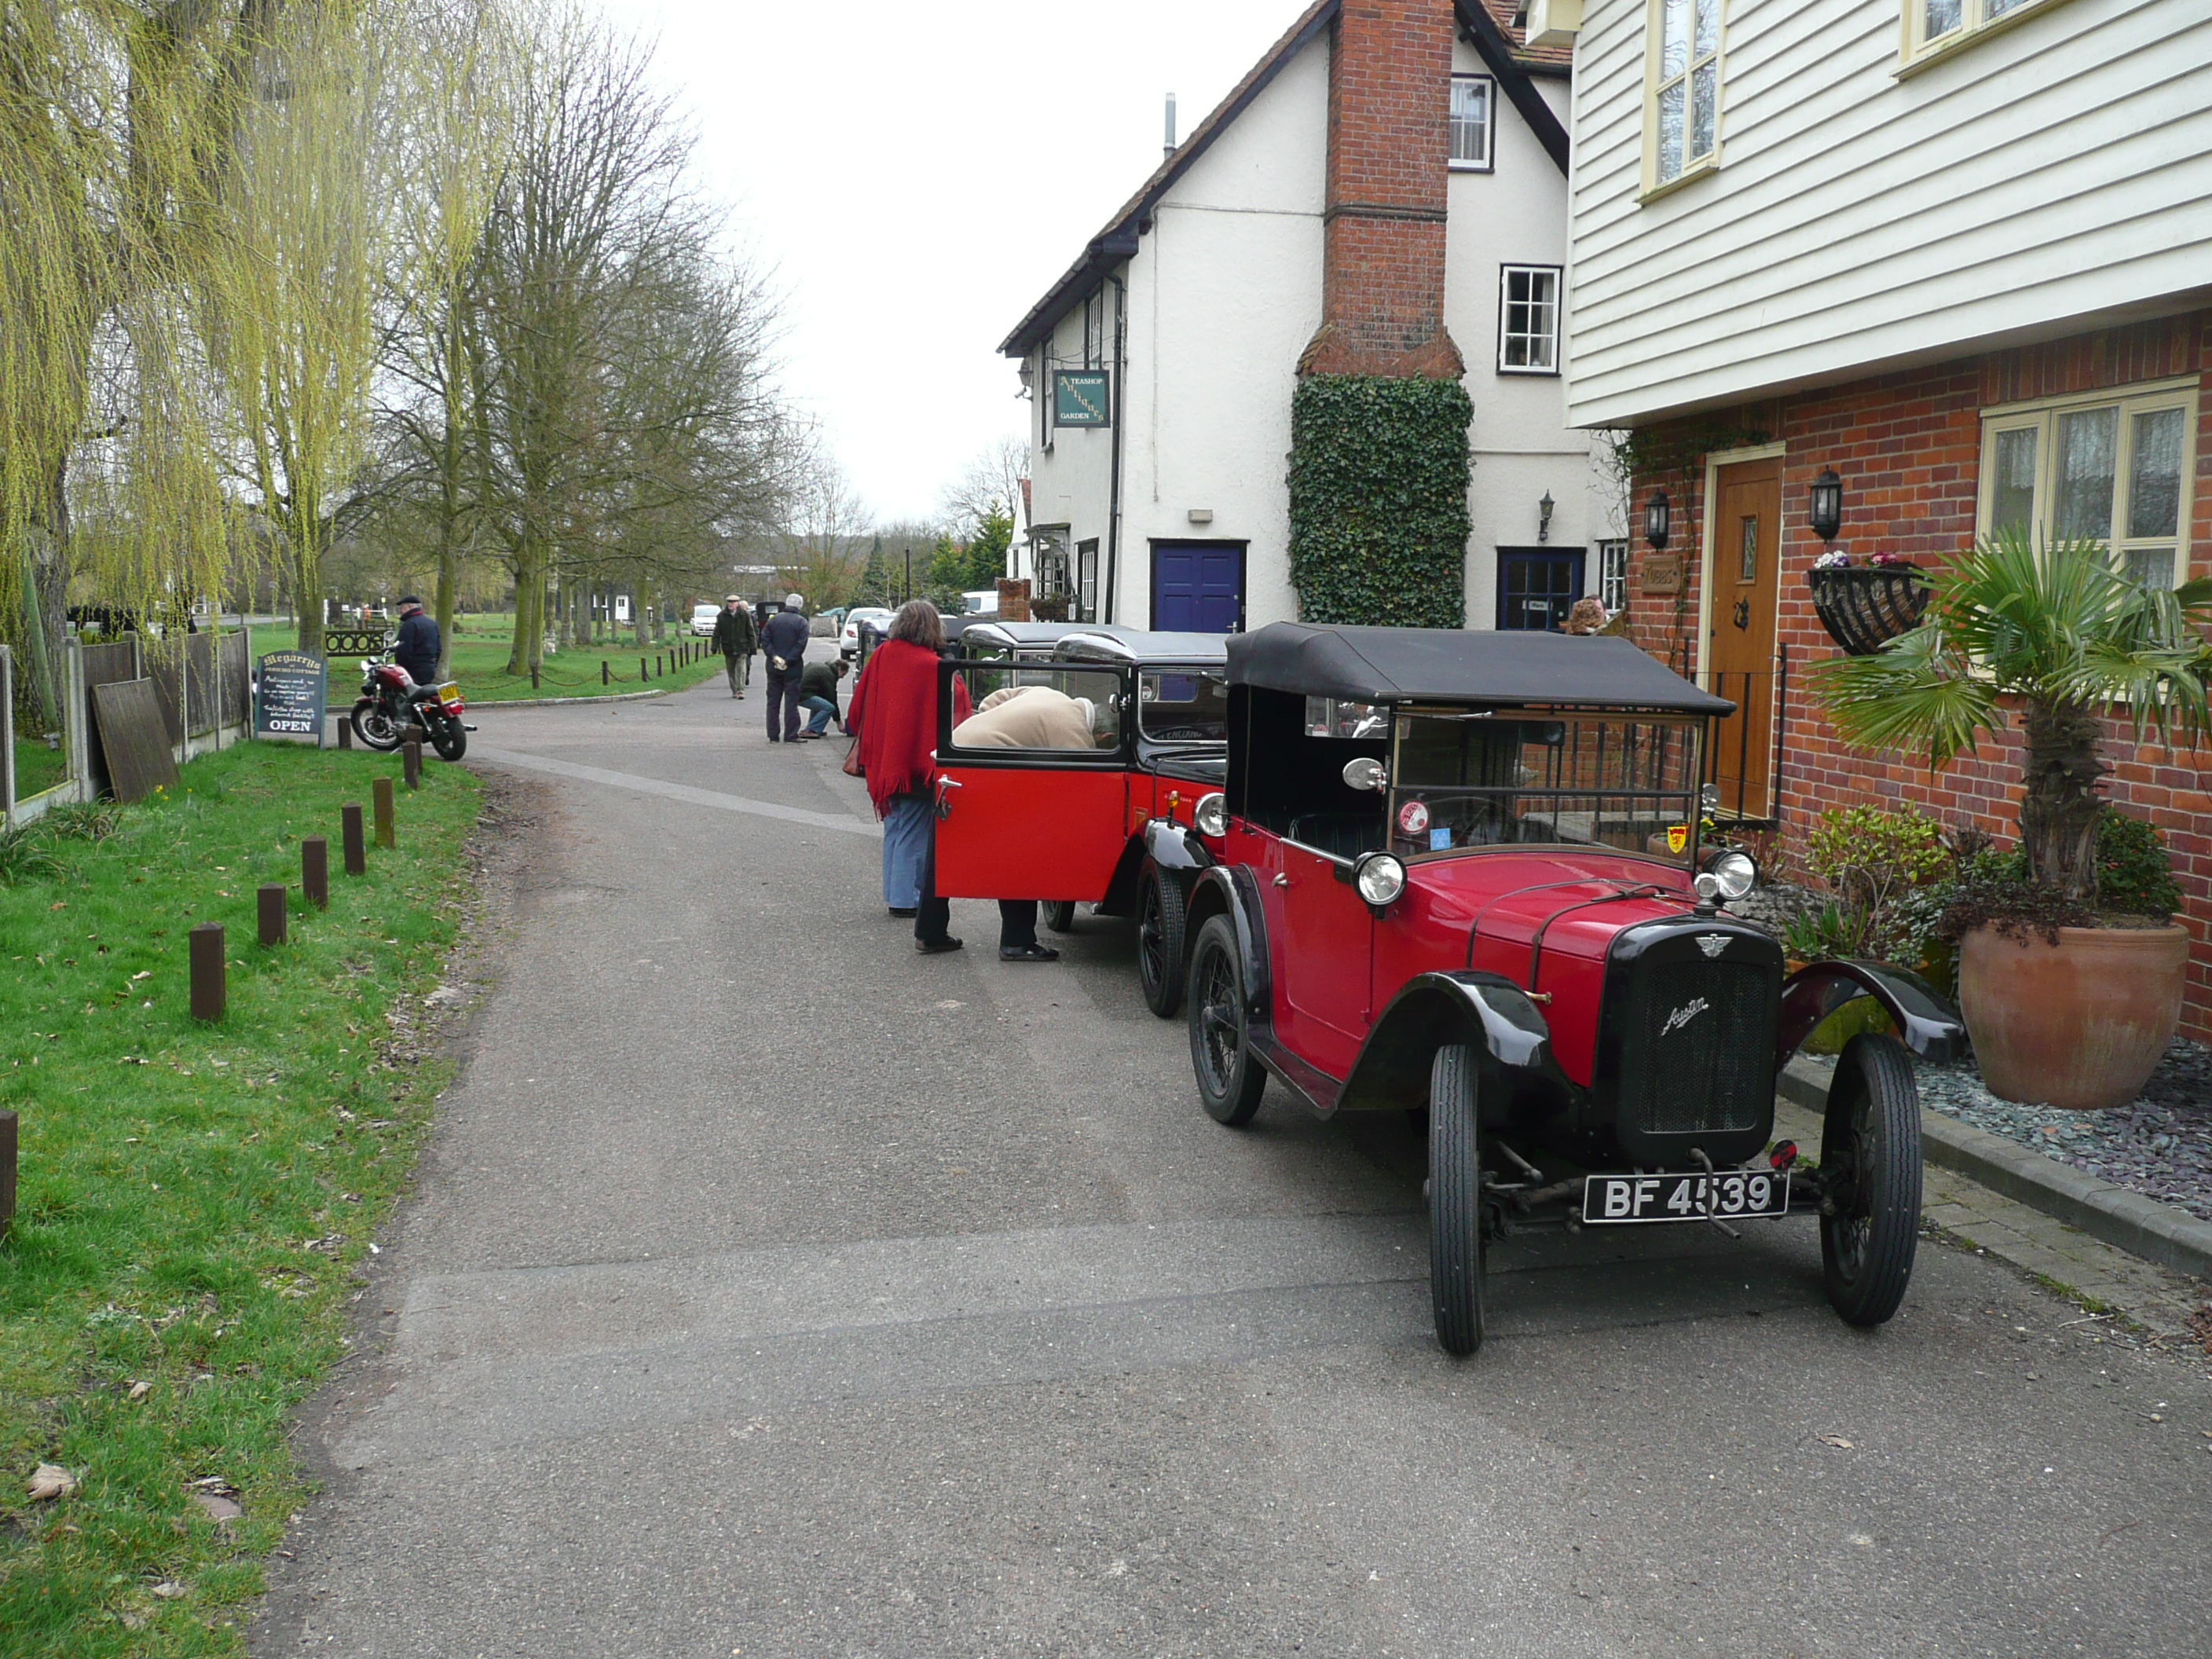 about 8 Austin 7 cars,